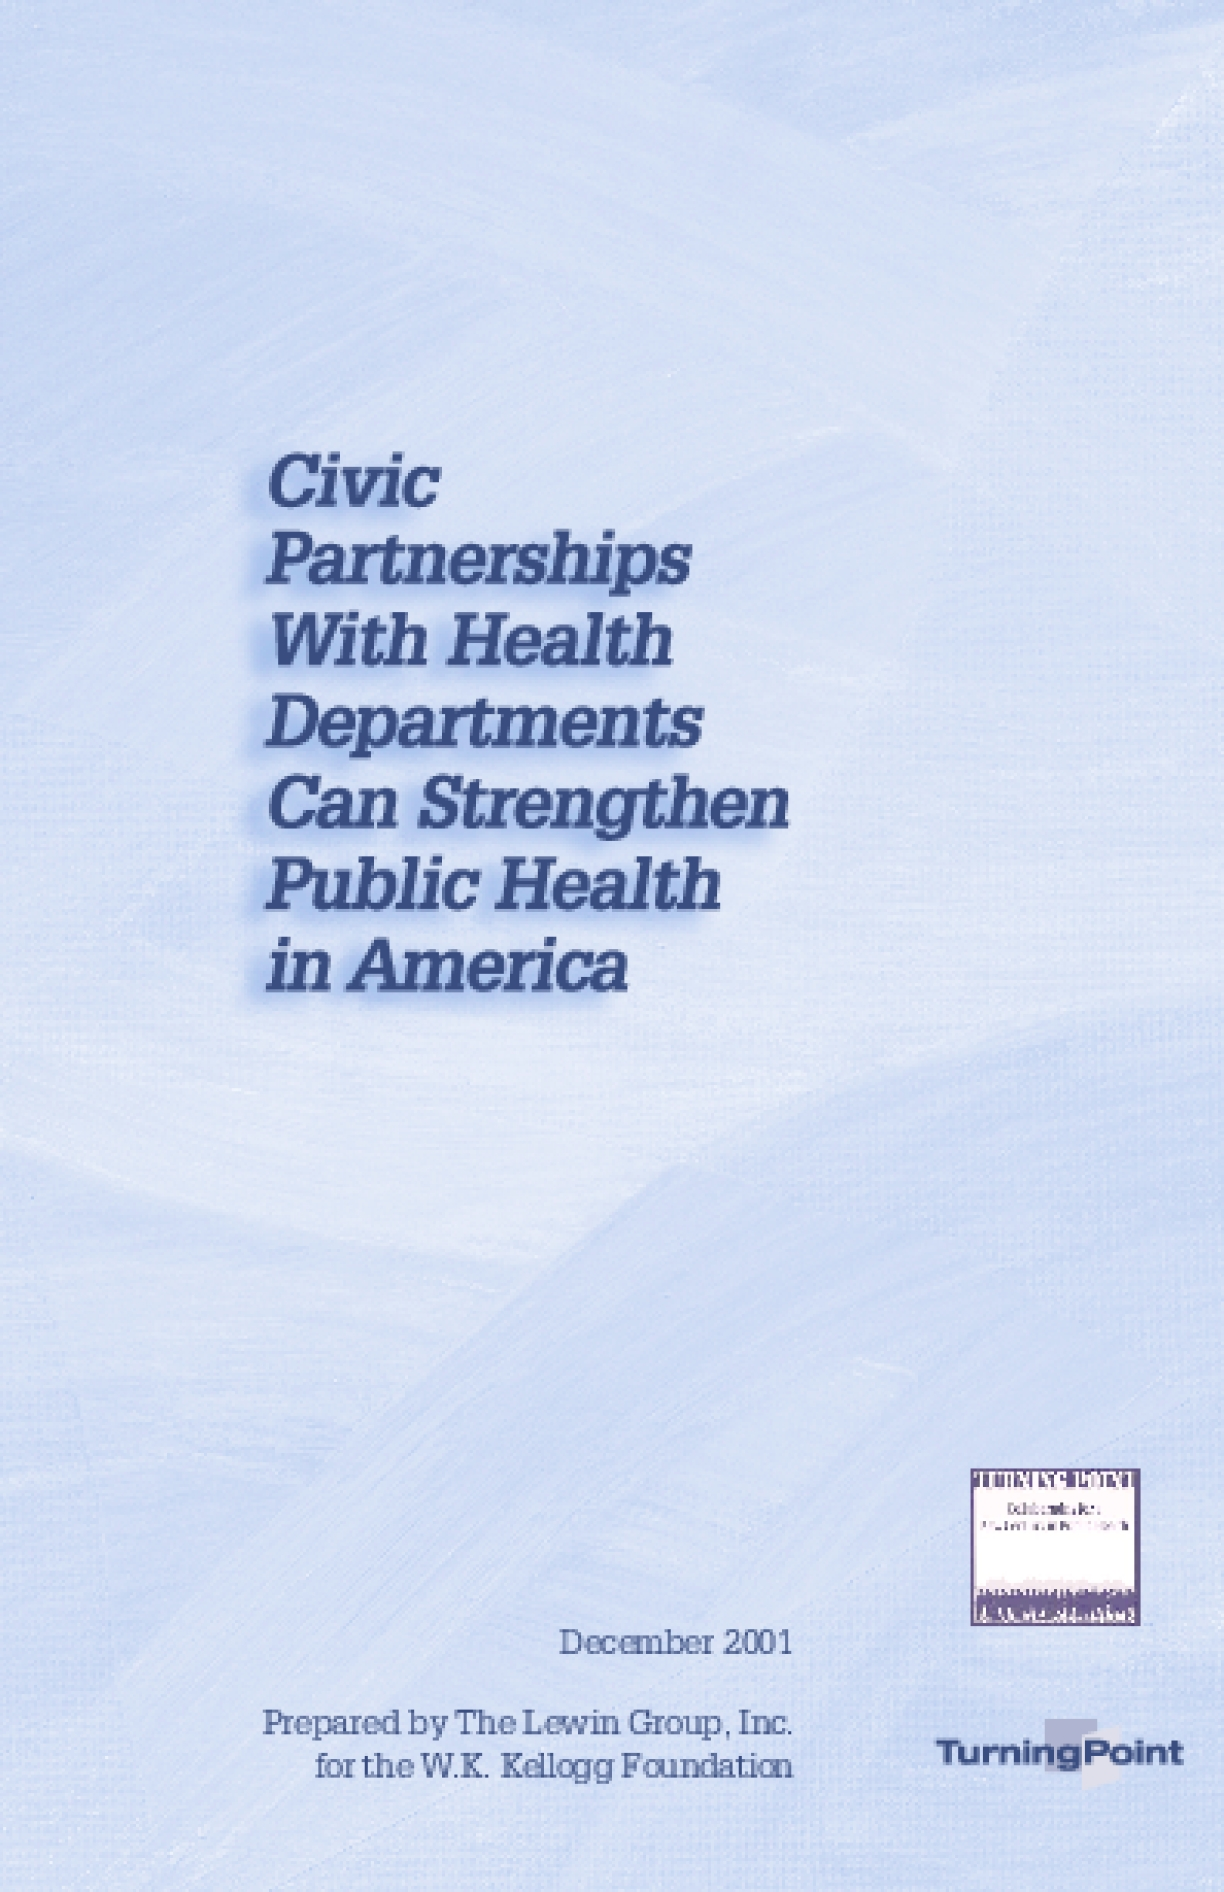 Civic Partnerships With Health Departments Can Strengthen Public Health in America